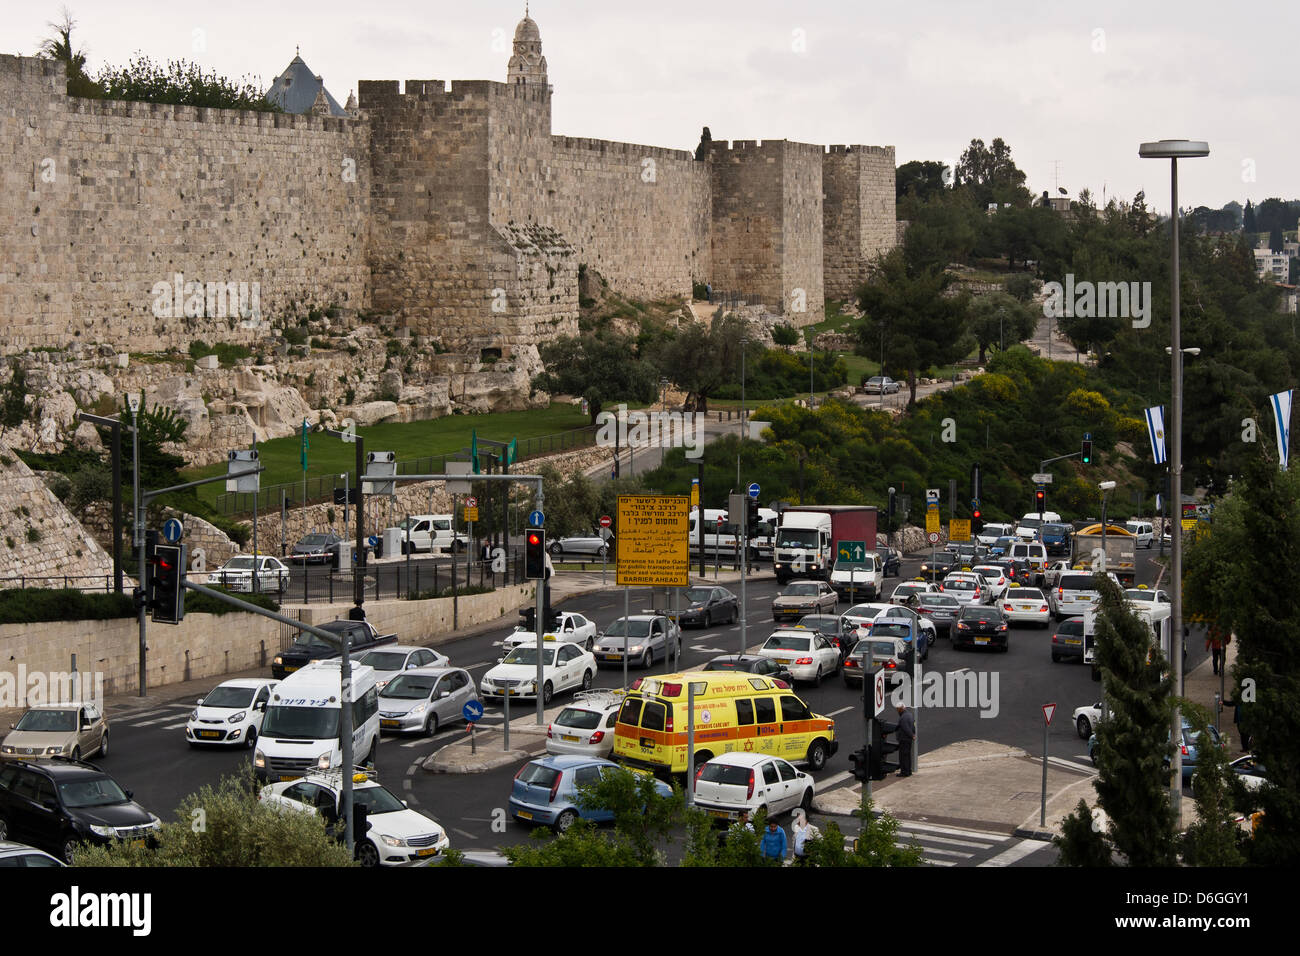 An ambulance tries to make its way through heavy traffic congestion below the Jaffa Gate to the Old City in Jerusalem - Stock Image